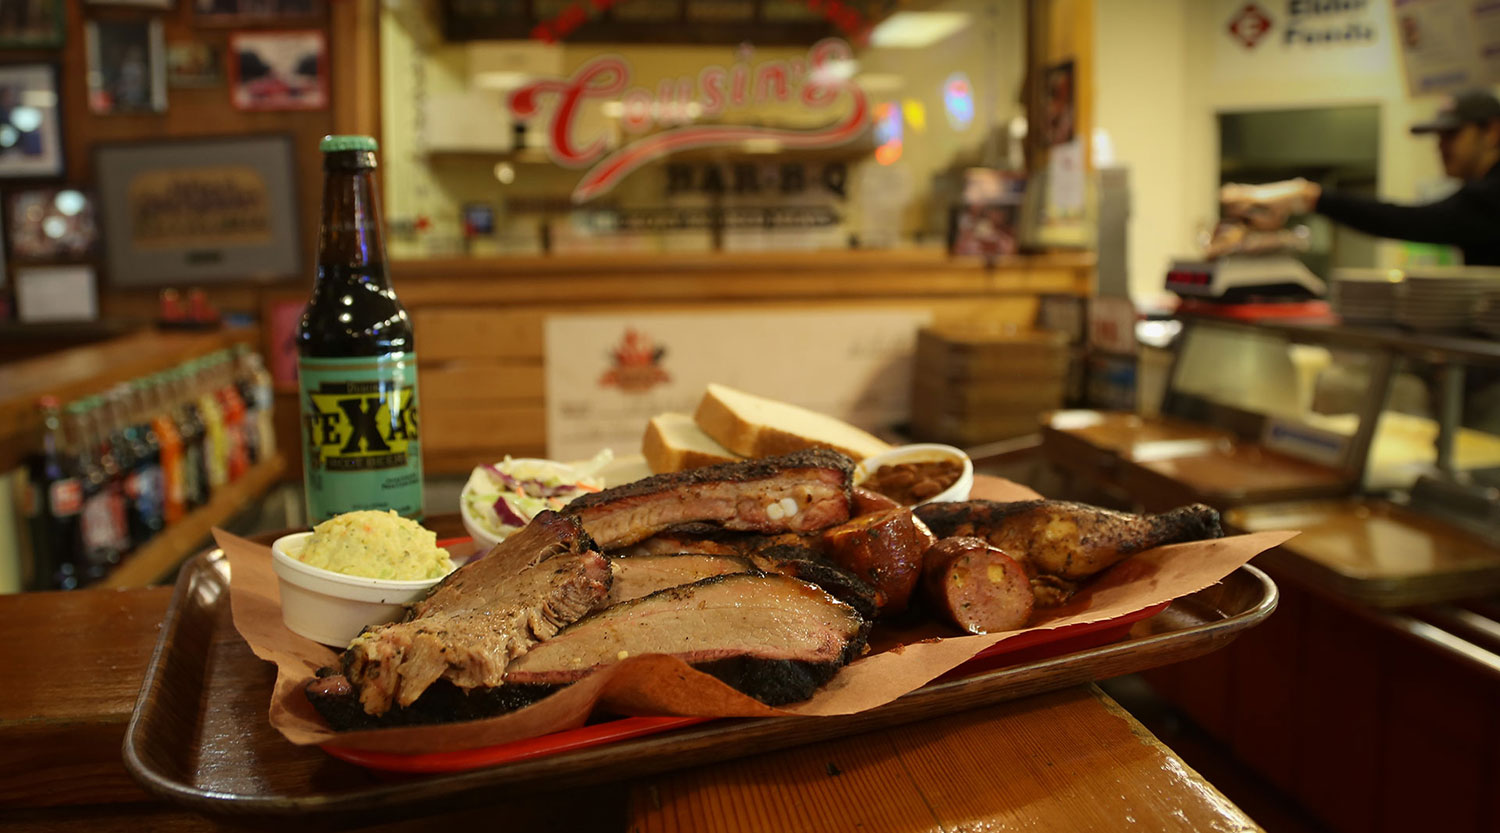 Cousin's Forth Worth Bar-B-Q Restaurants have been serving real slow smoke Texas BBBQ since 1983